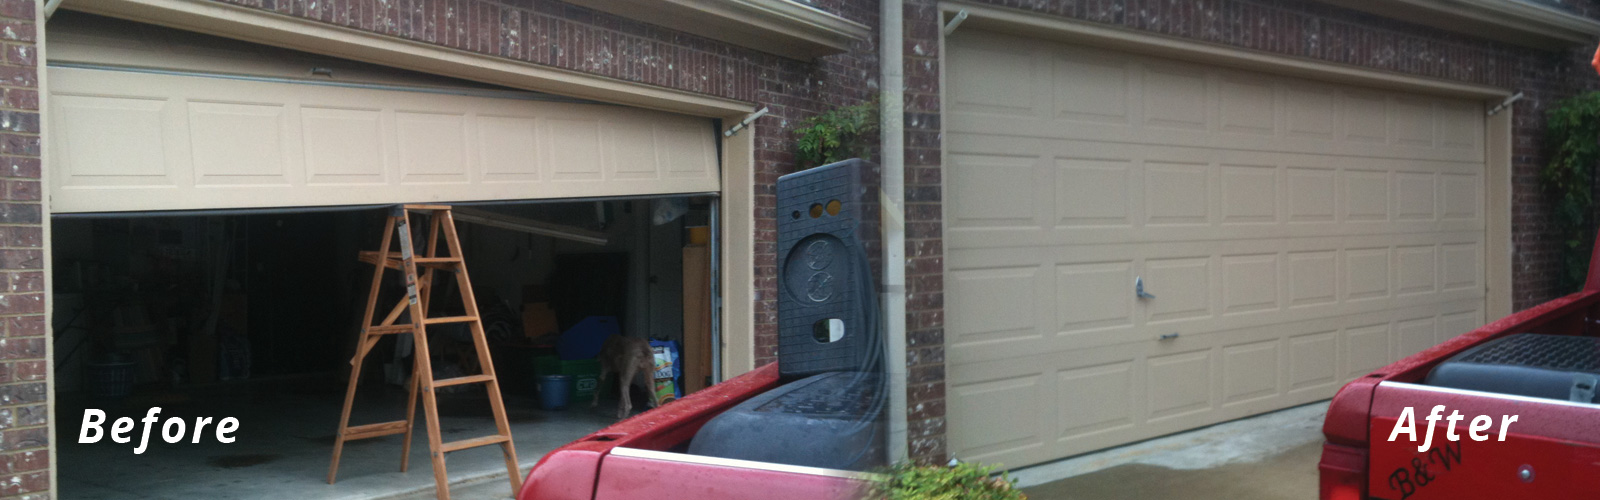 Attrayant ... B U0026 W Garage Doors | Fort Worth TX Garage Door Sales U0026 Service | 817 ...